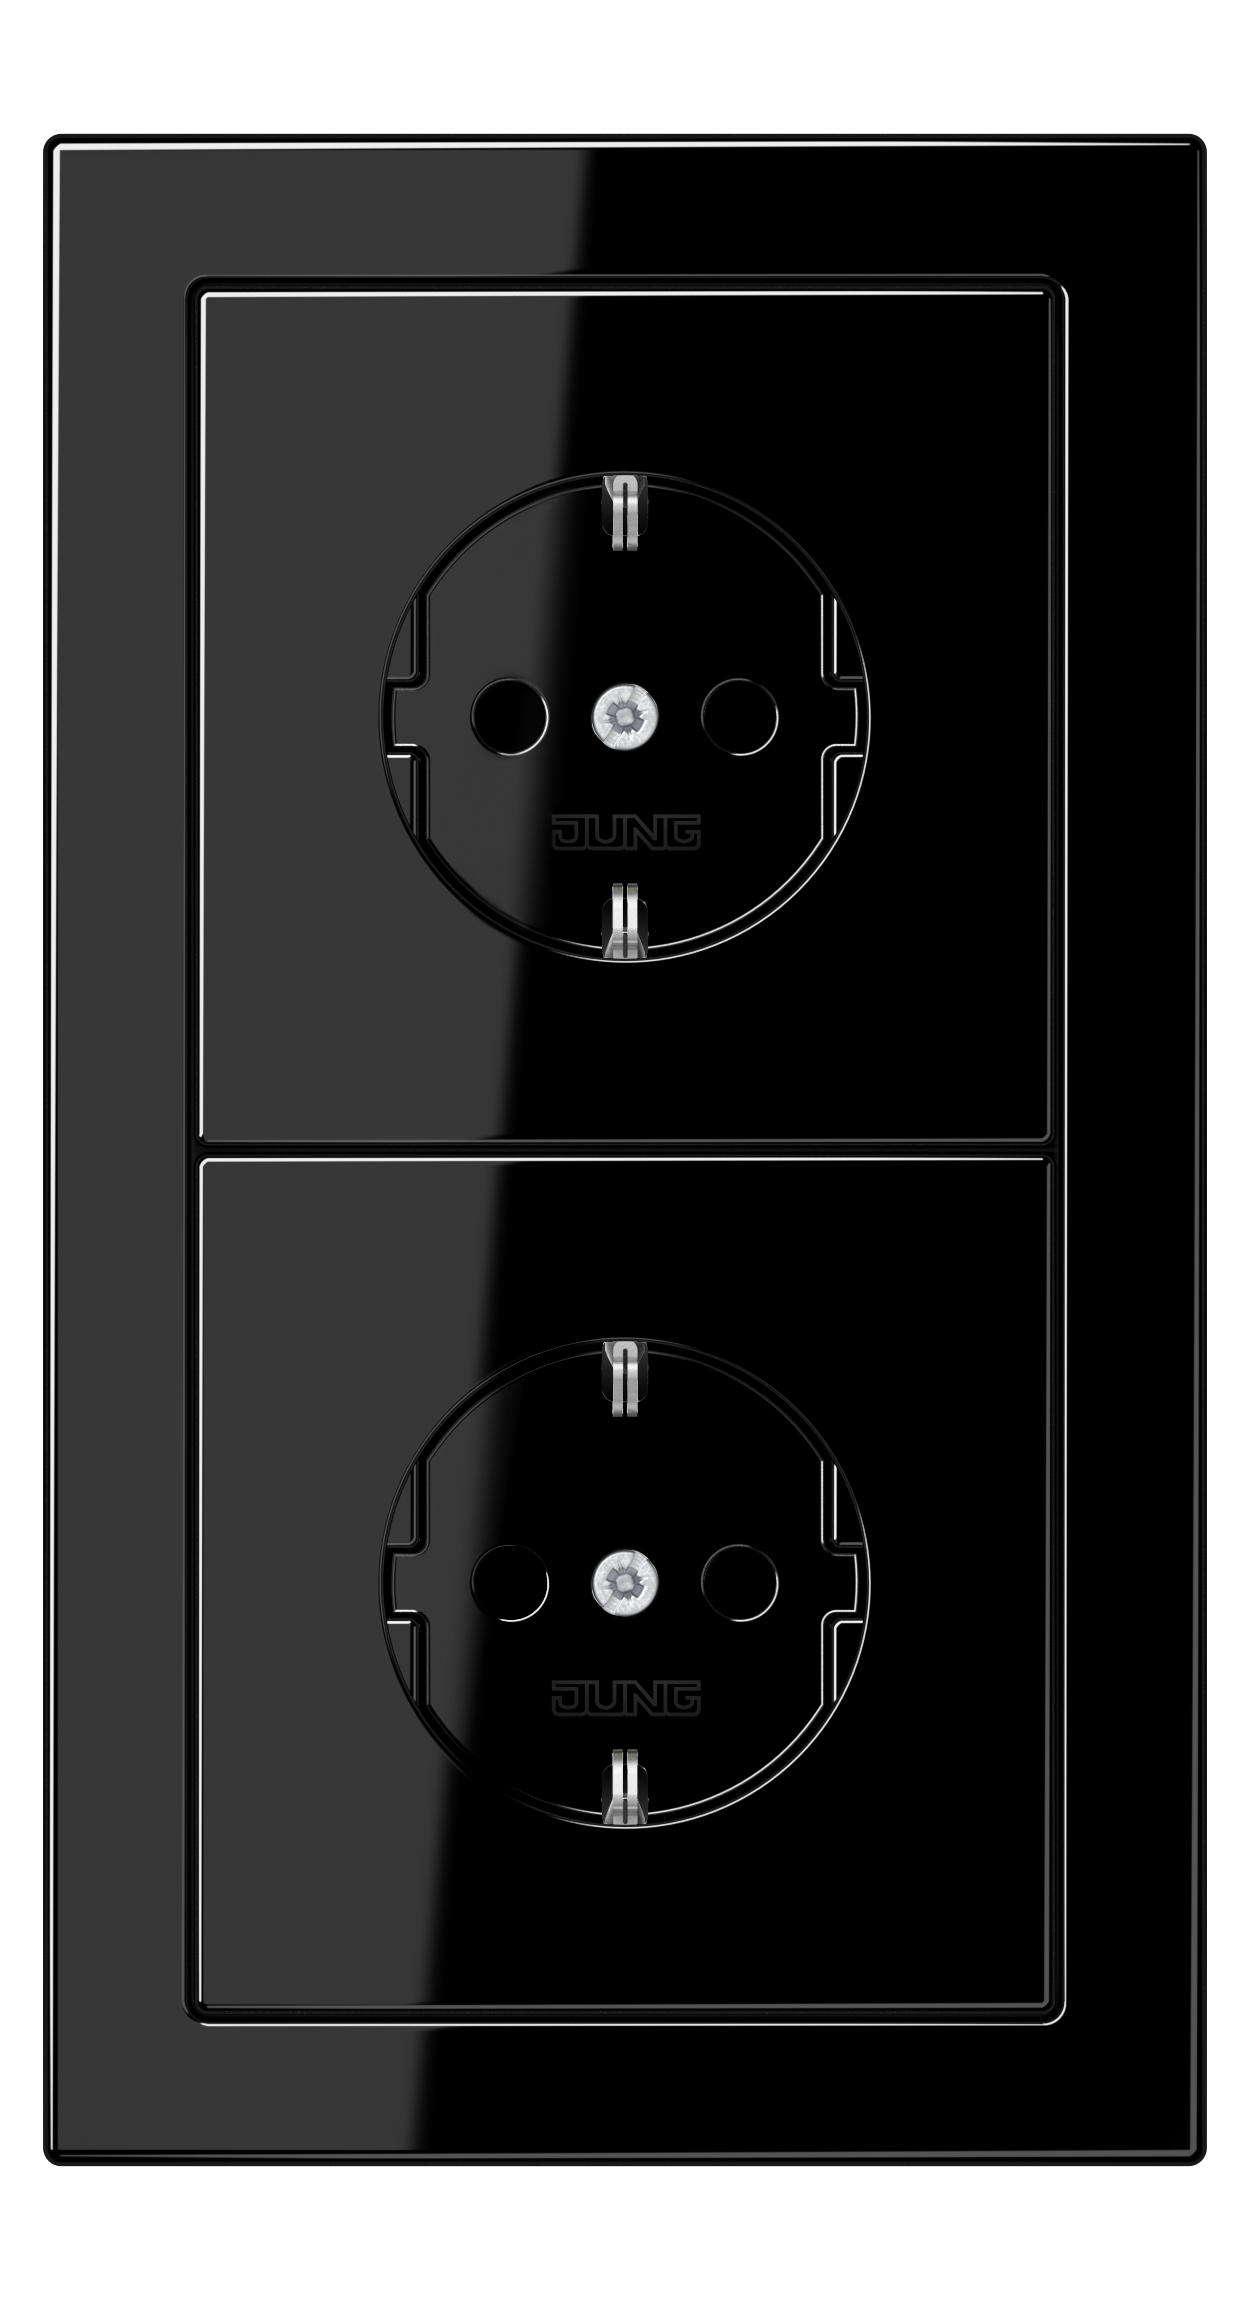 JUNG_LS_Design_black_socket-socket